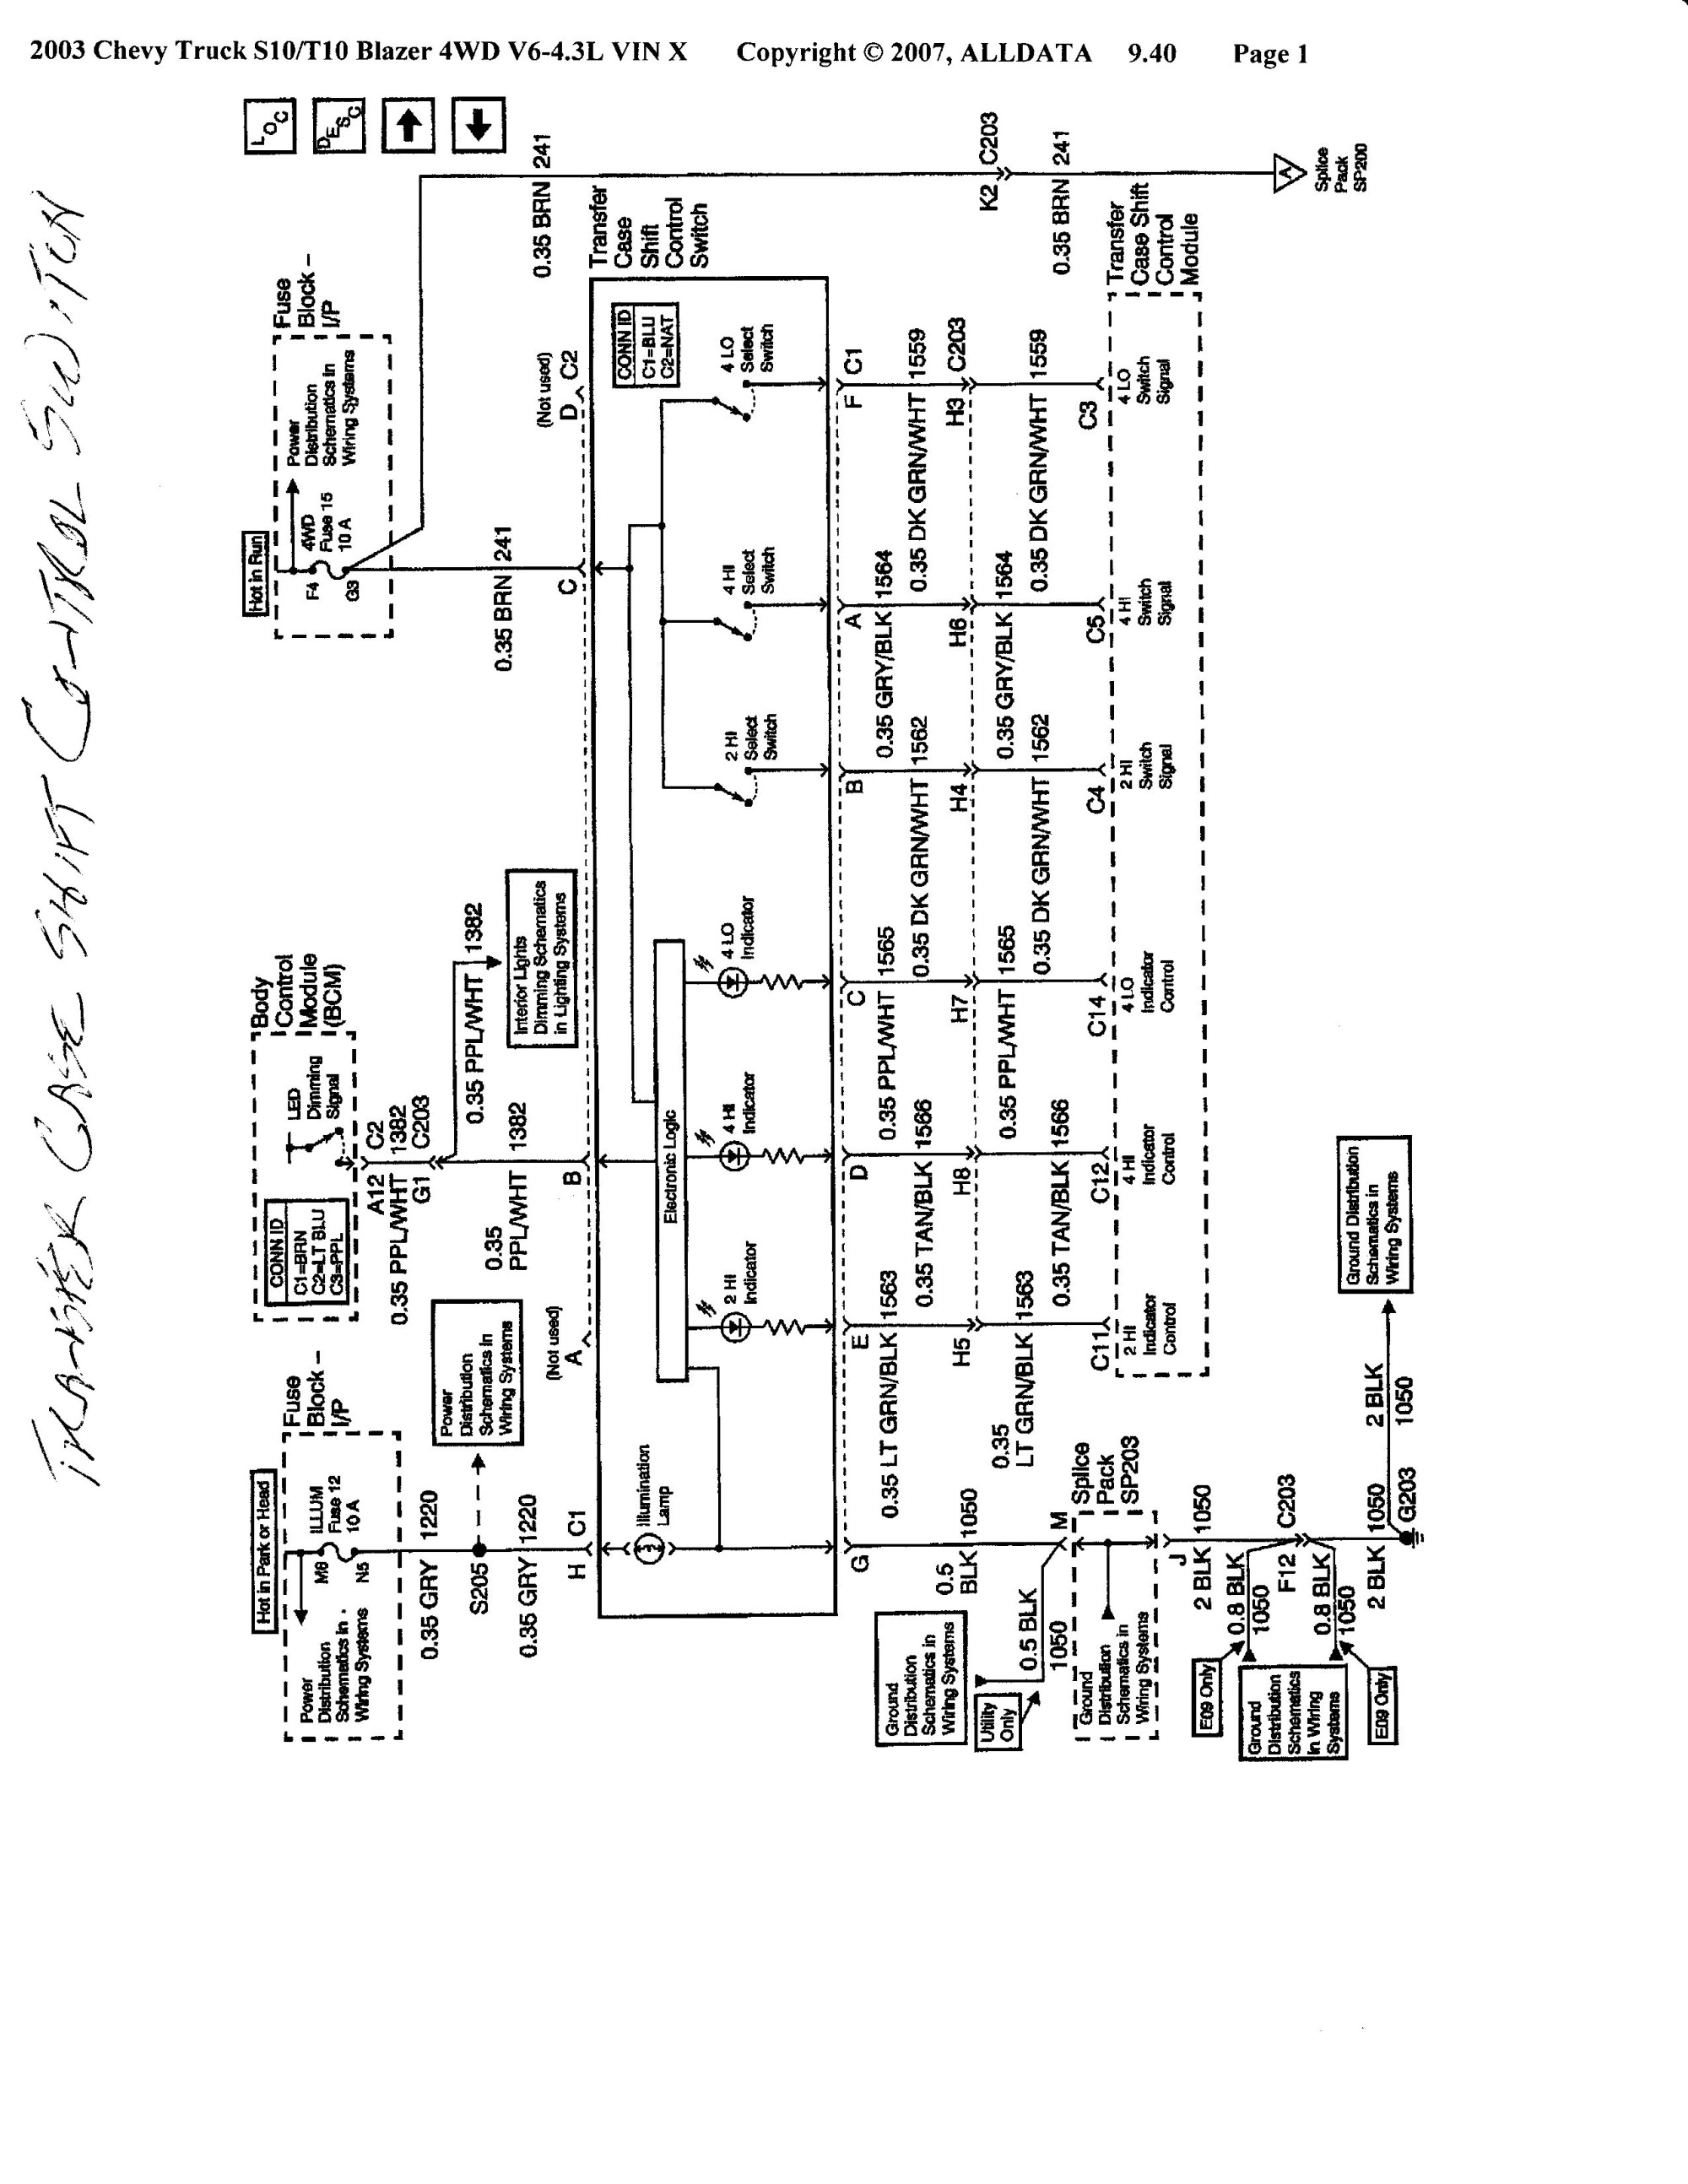 hight resolution of chevy s10 transfer case wiring diagram wiring diagram expert chevy blazer transfer case diagram on chevy s10 transfer case wiring